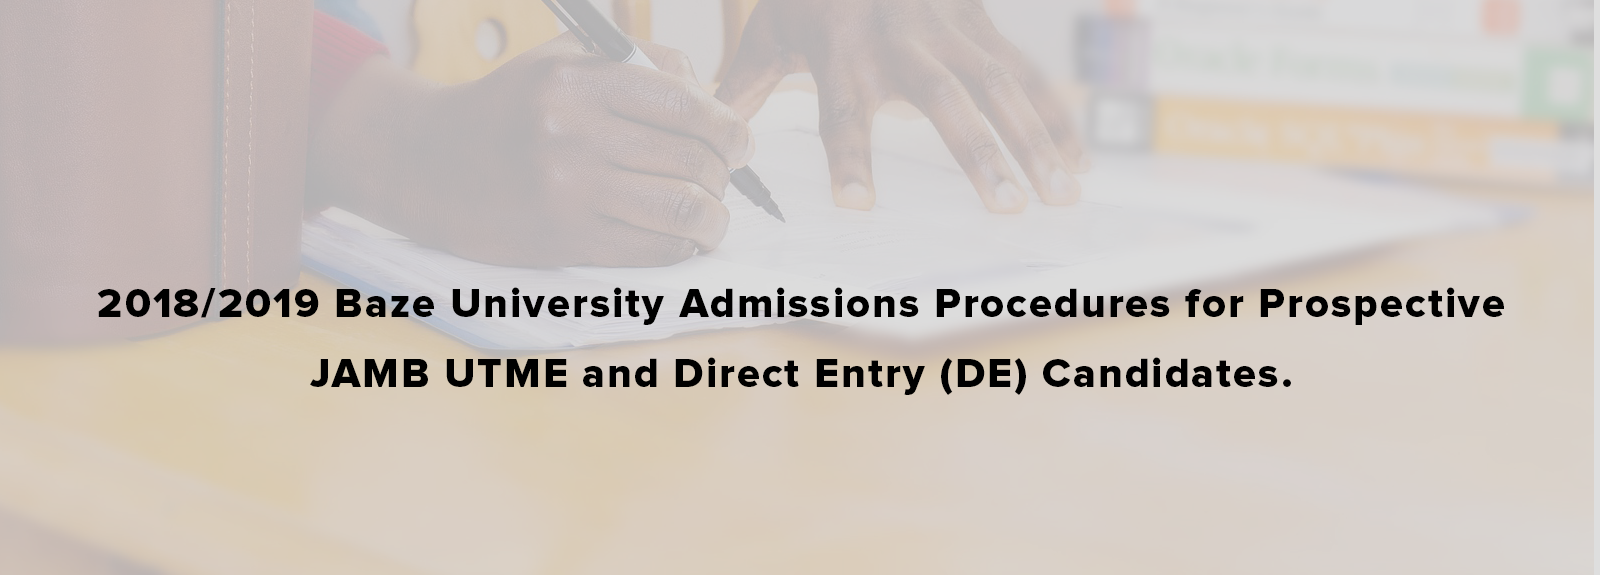 save off 81527 4210c 2018 2019 Baze University Admissions Procedures for Prospective JAMB UTME  and Direct Entry (DE) Candidates.